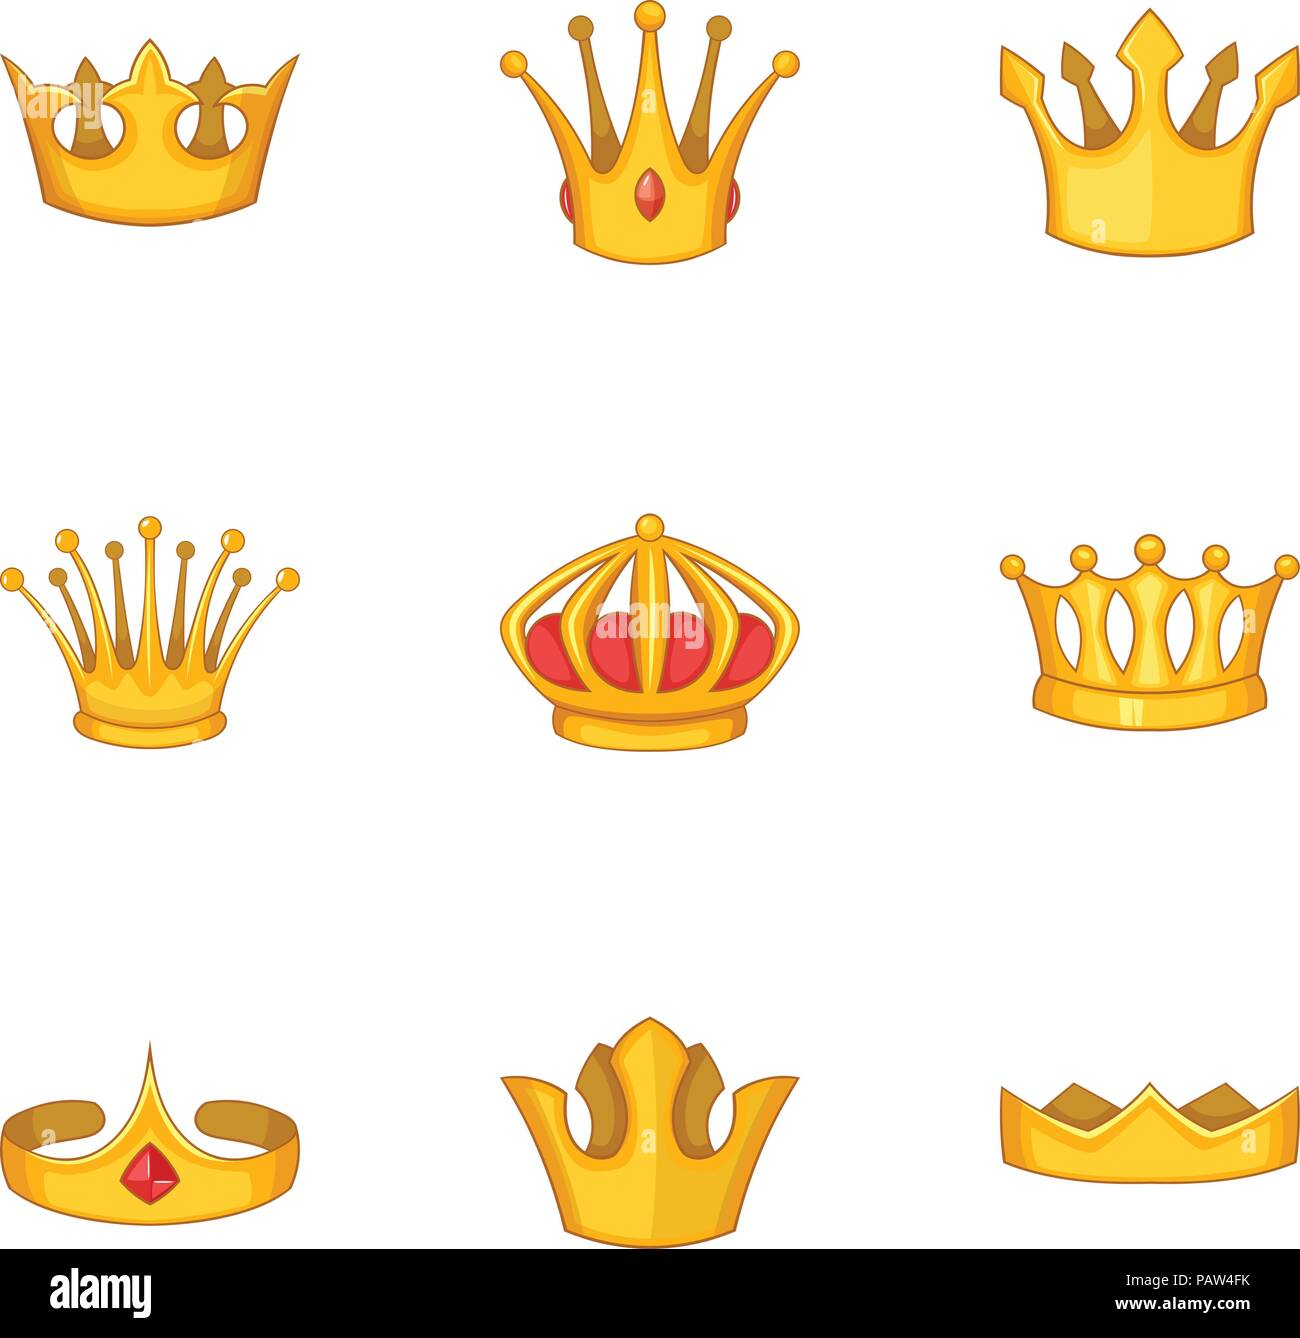 Head Crown Icons Set Cartoon Style Stock Vector Image Art Alamy The human crown is made of three layers of the scalp above the skull. alamy